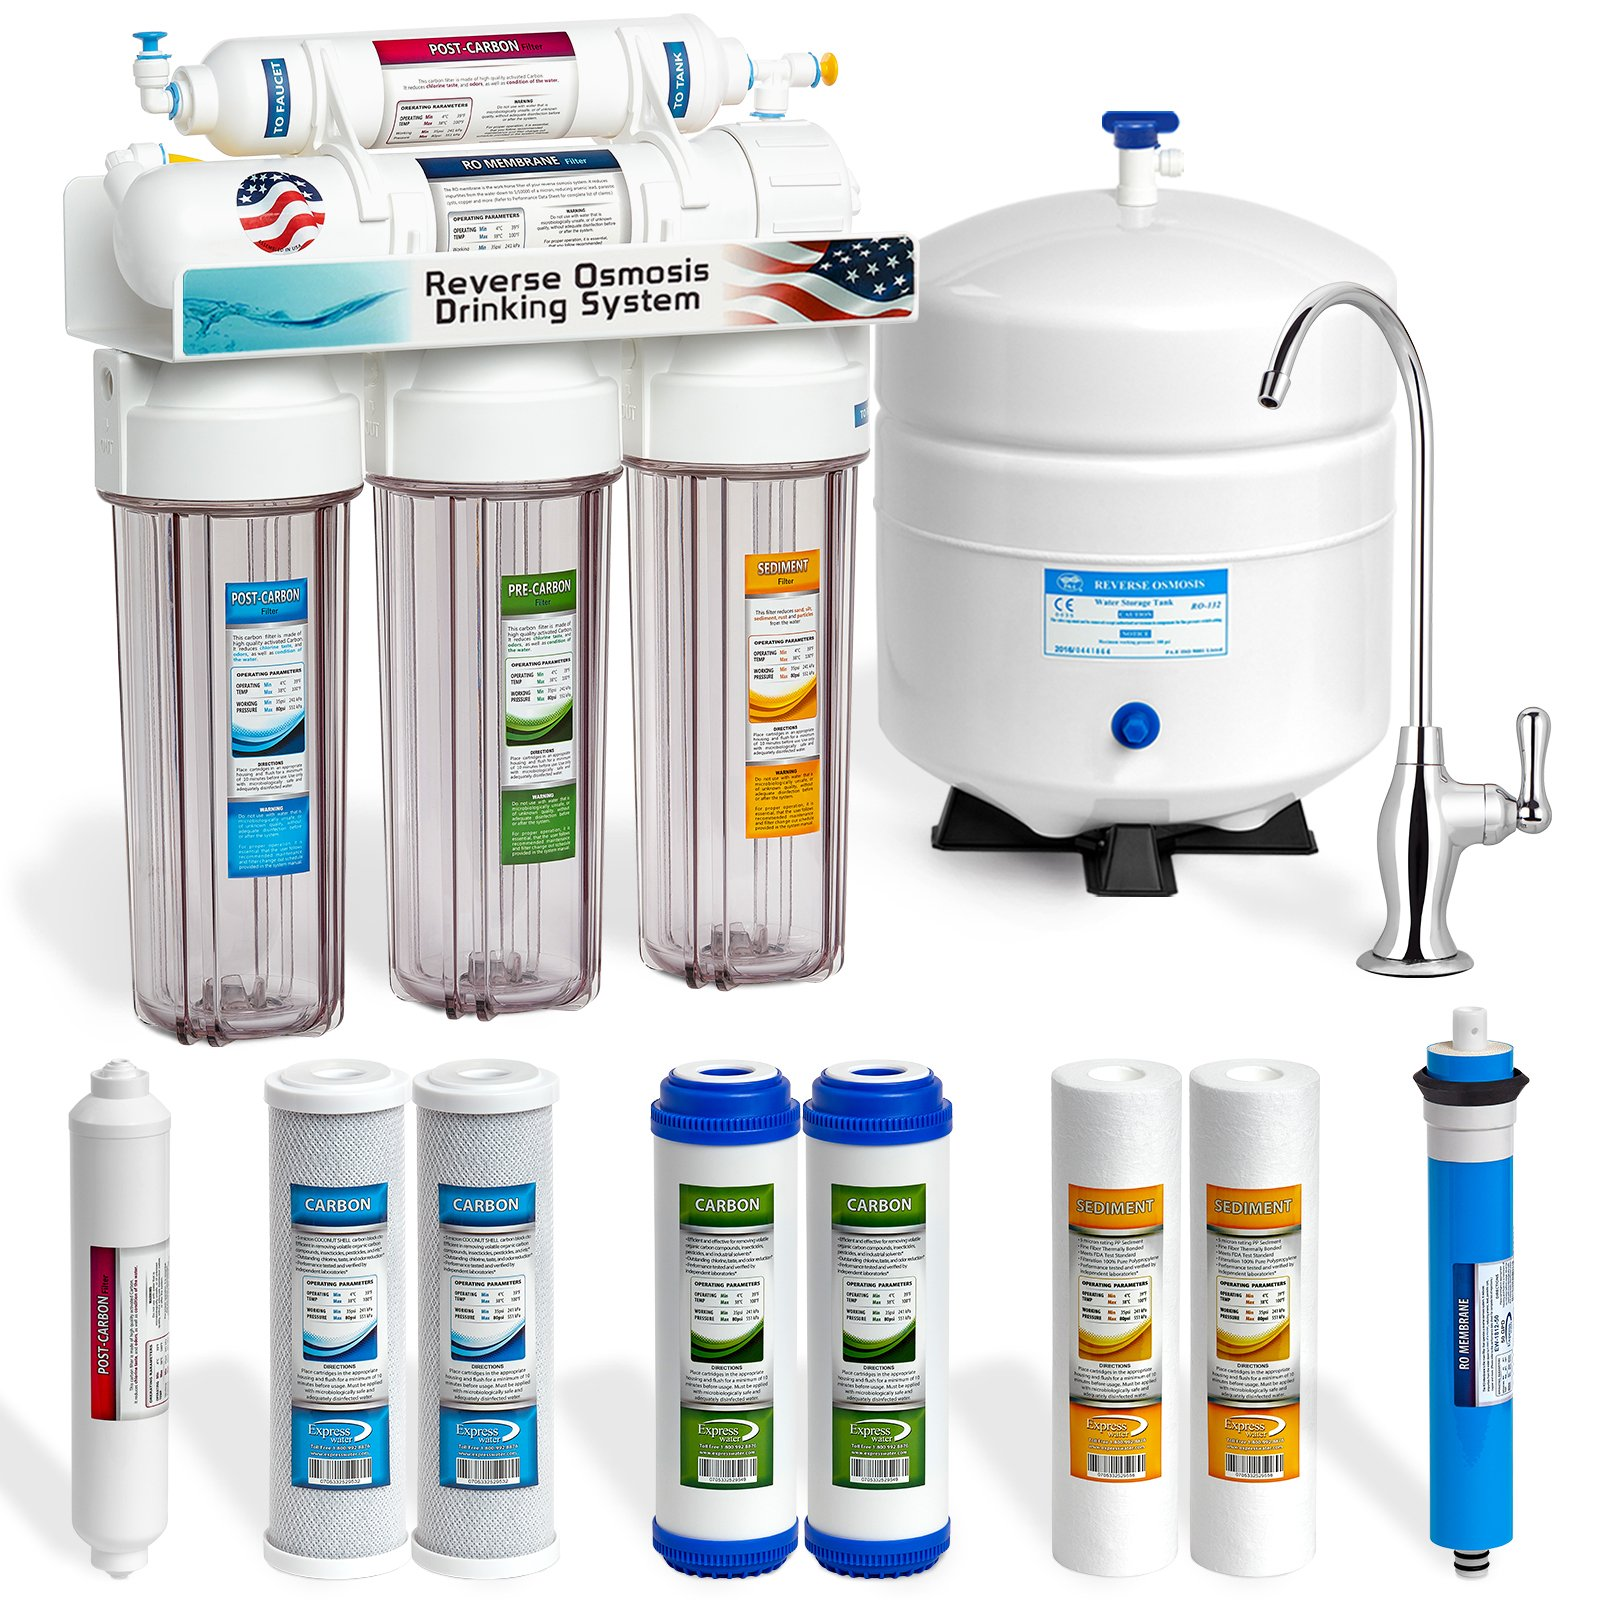 Express Water 5 Stage Under Sink Reverse Osmosis Filtration System 50 GPD RO Membrane Filter Deluxe Faucet Clear Housing Ultra Safe Residential Home Drinking Water Purification Extra Set of 4 Filters by Express Water